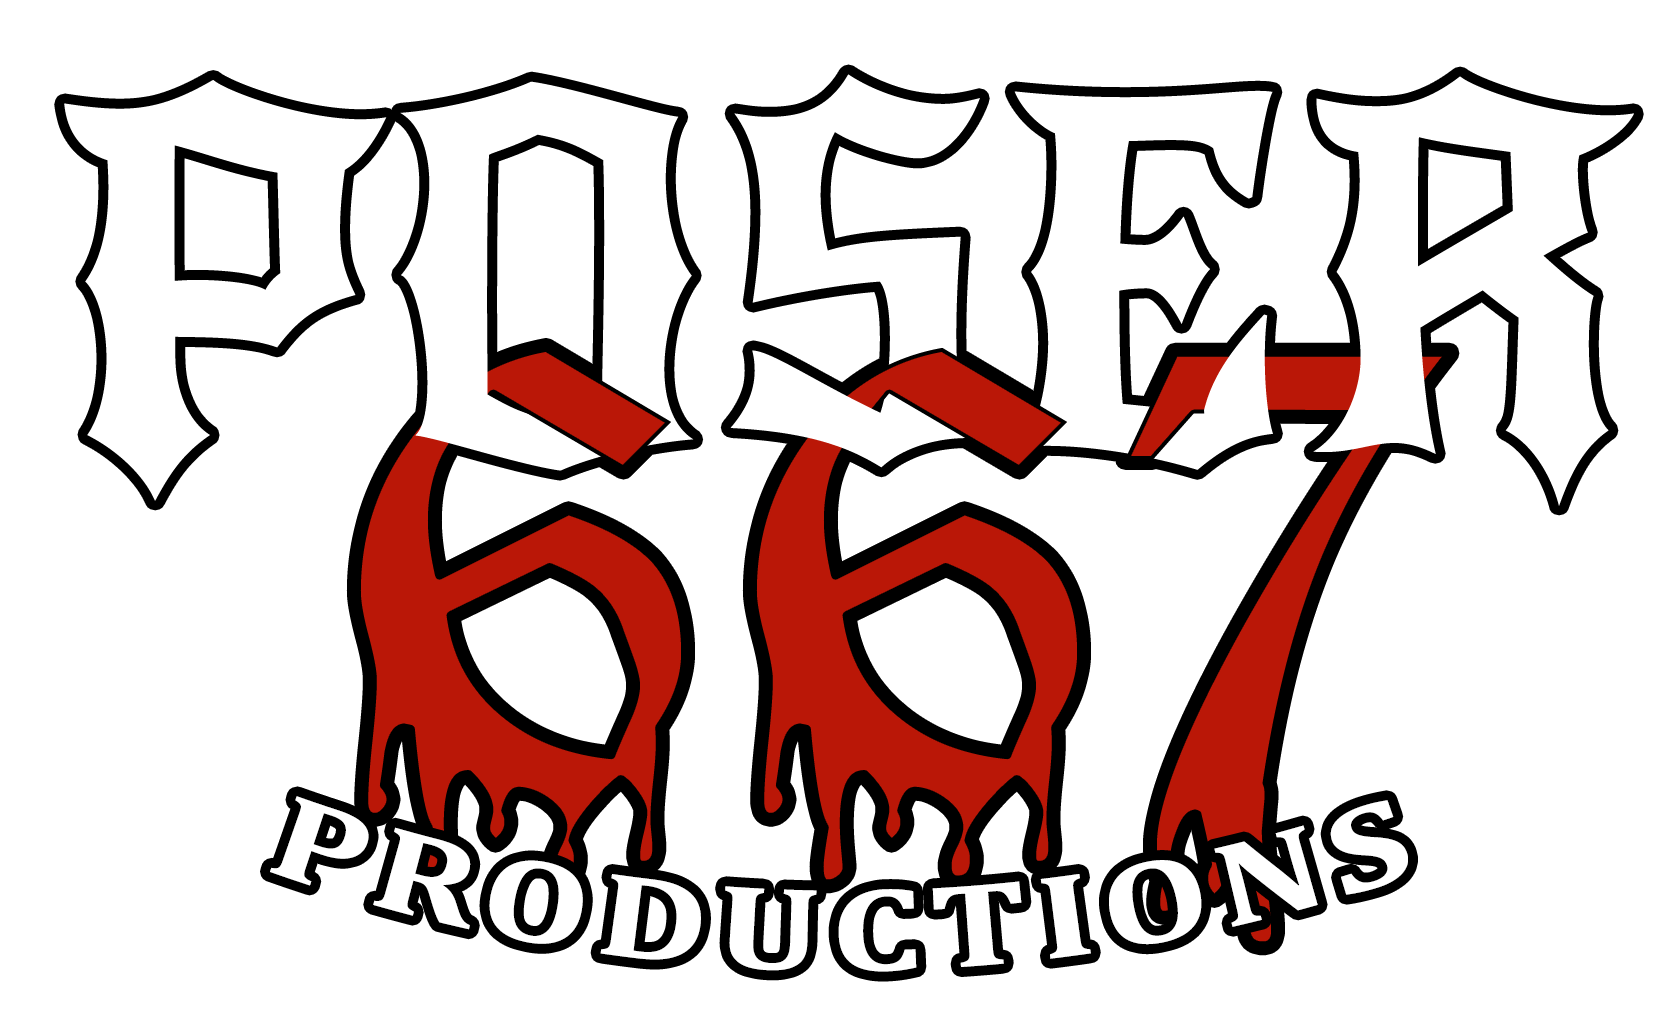 Poser667Productions